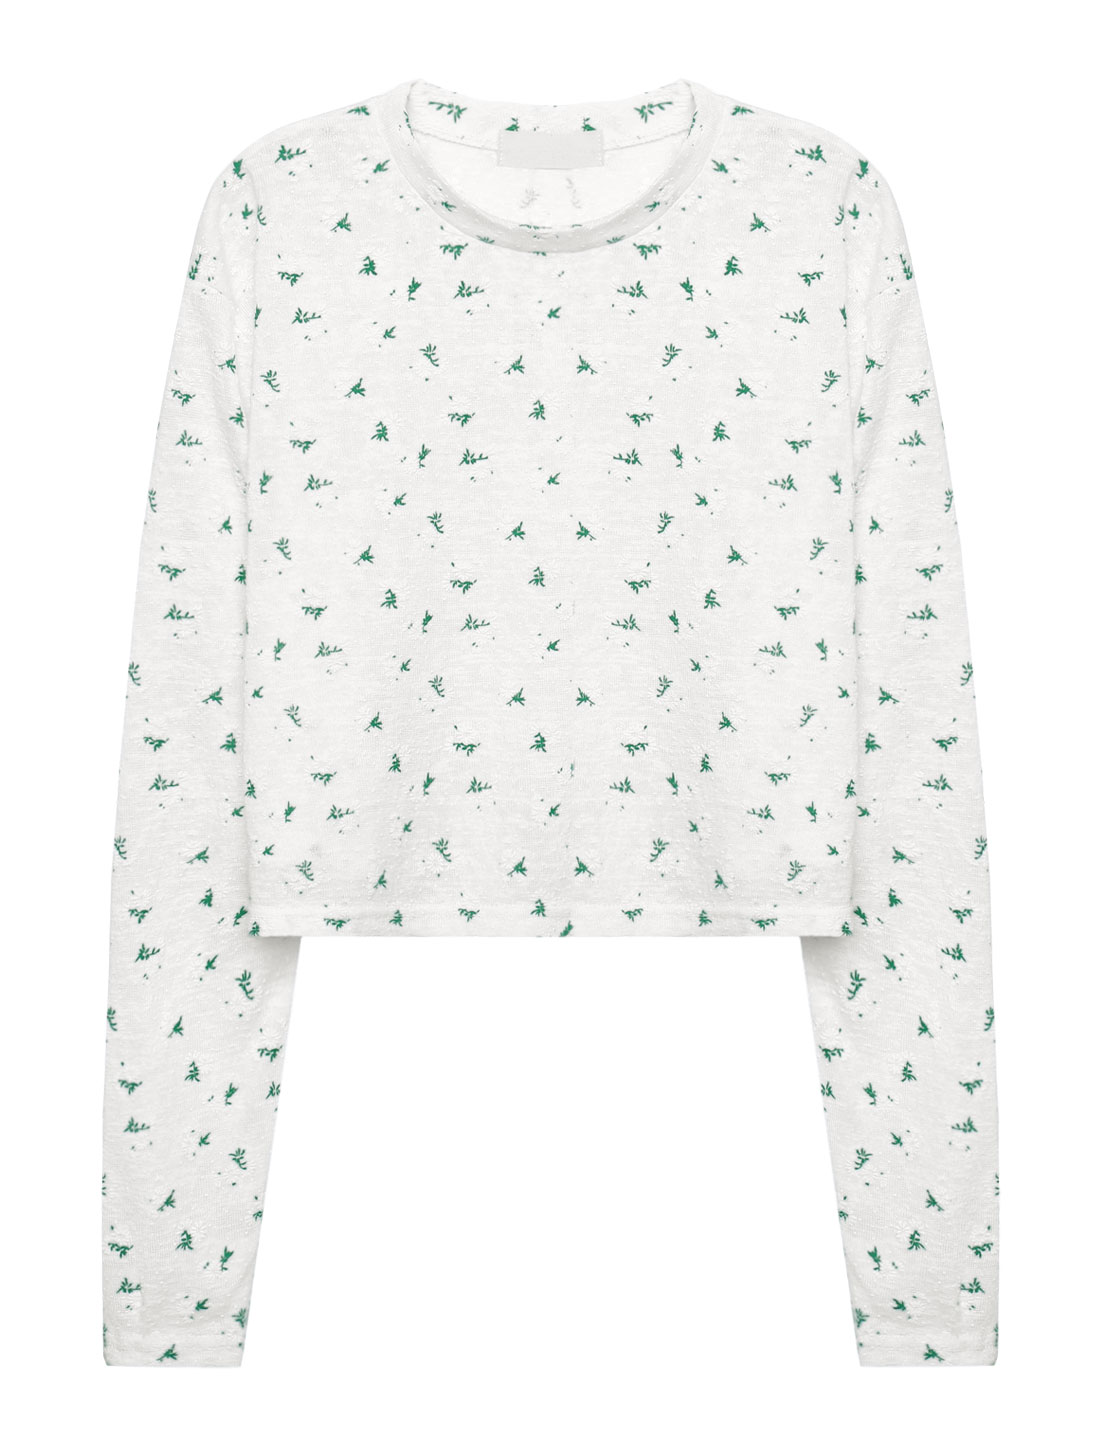 Woman Crew Neck Long Sleeves Floral Dots Crop Top White XS